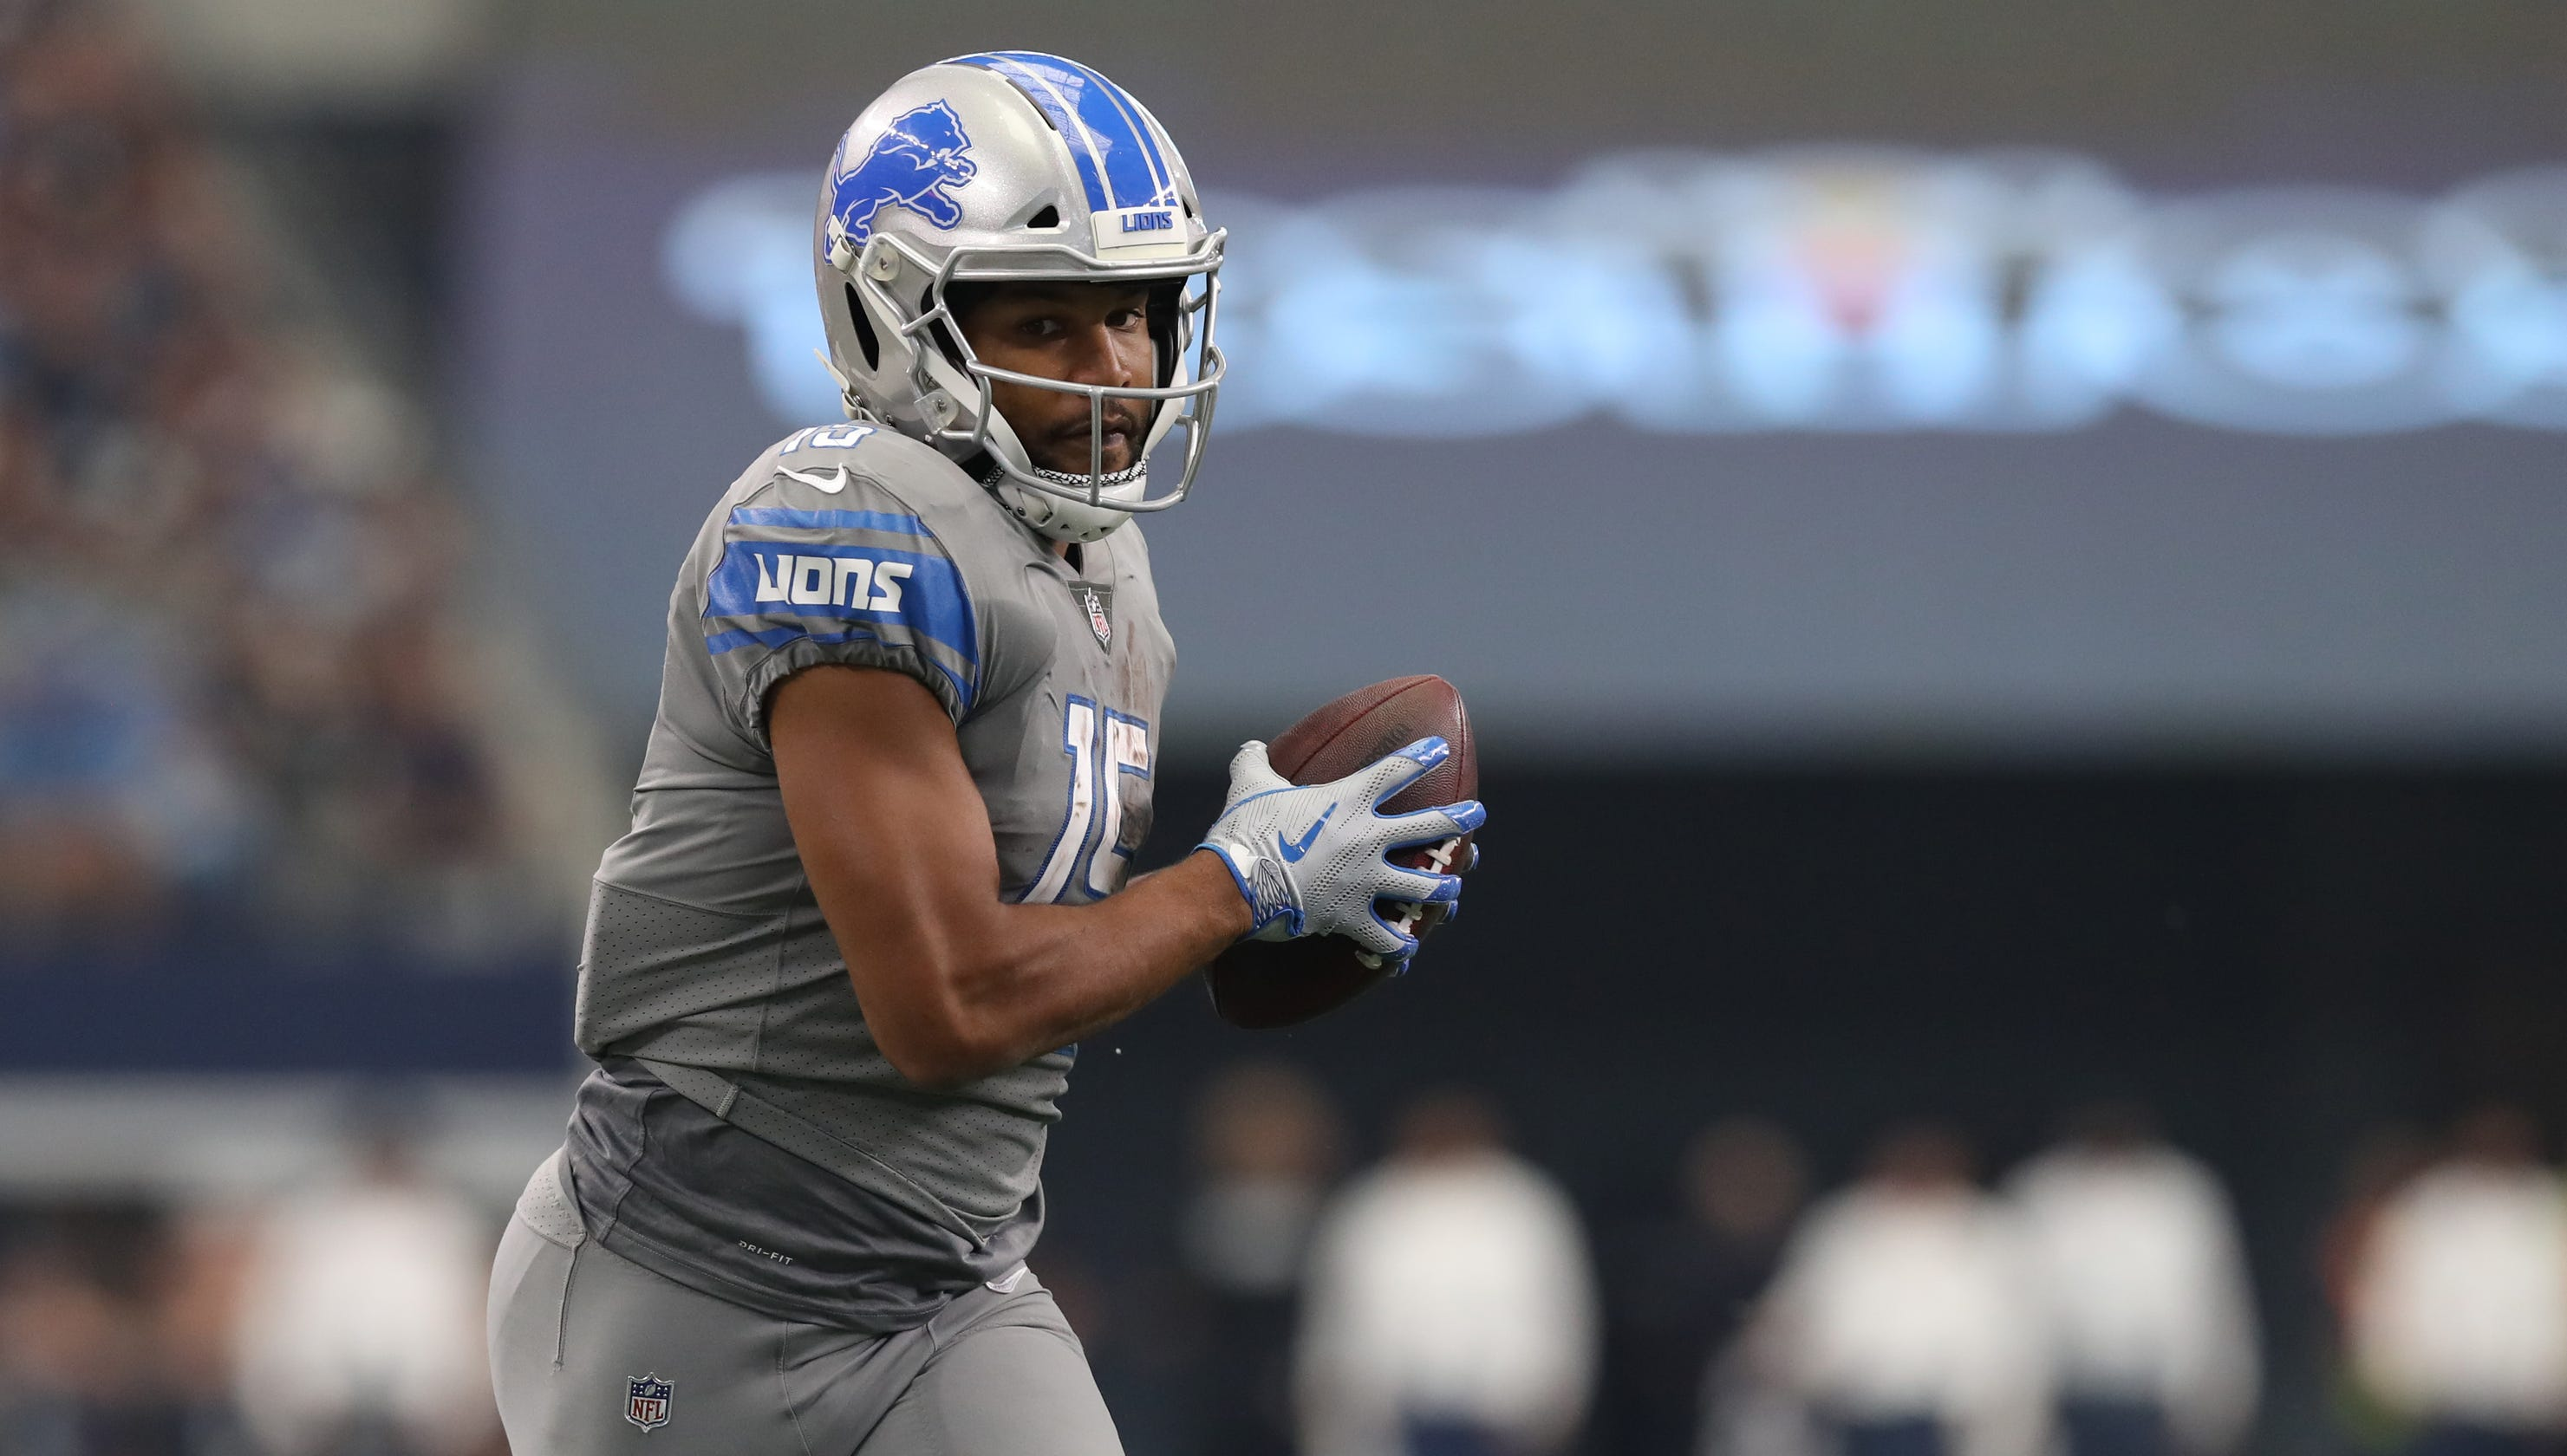 Philadelphia Eagles land WR Golden Tate from Detroit Lions in trade 8d315e1e7